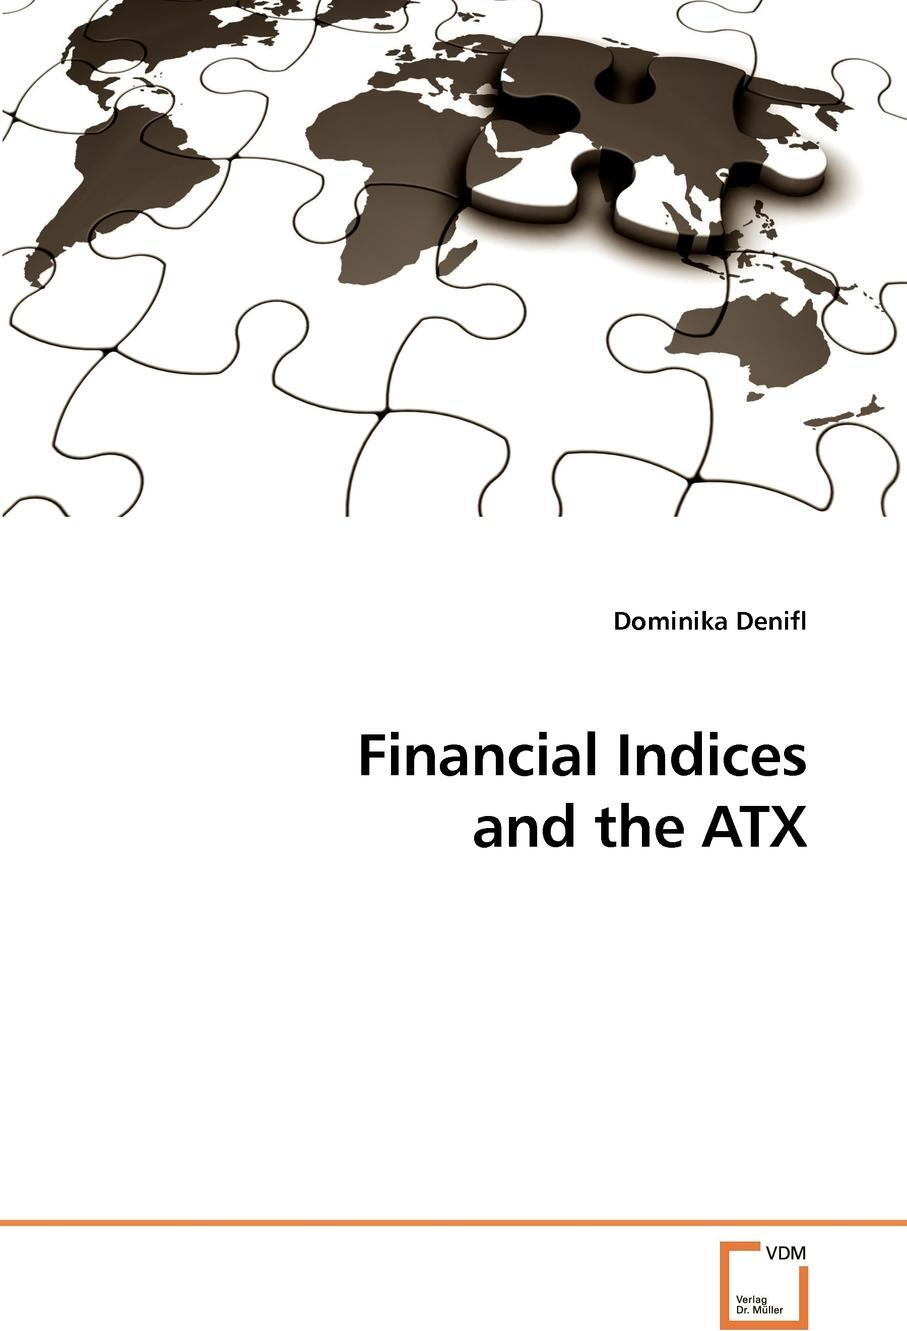 Financial Indices and the ATX